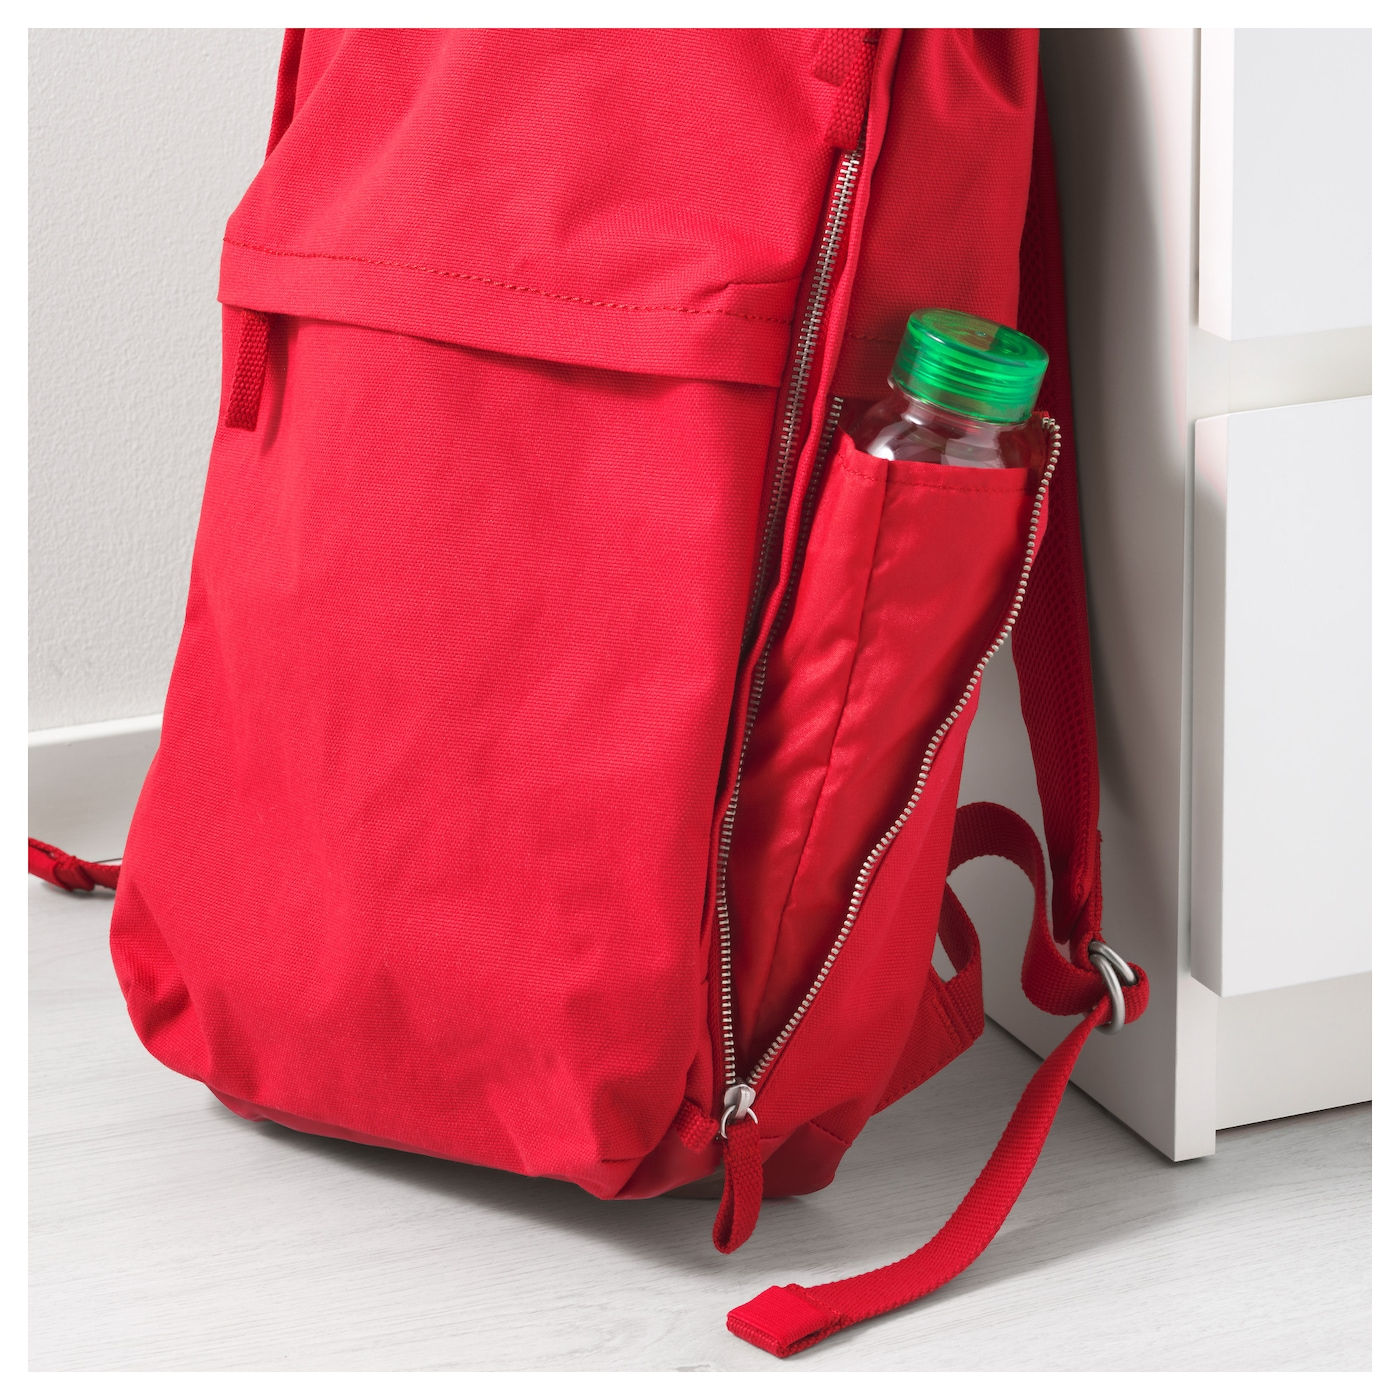 IKEA FÖRENKLA backpack Extra protection for your laptop in a separate padded compartment.